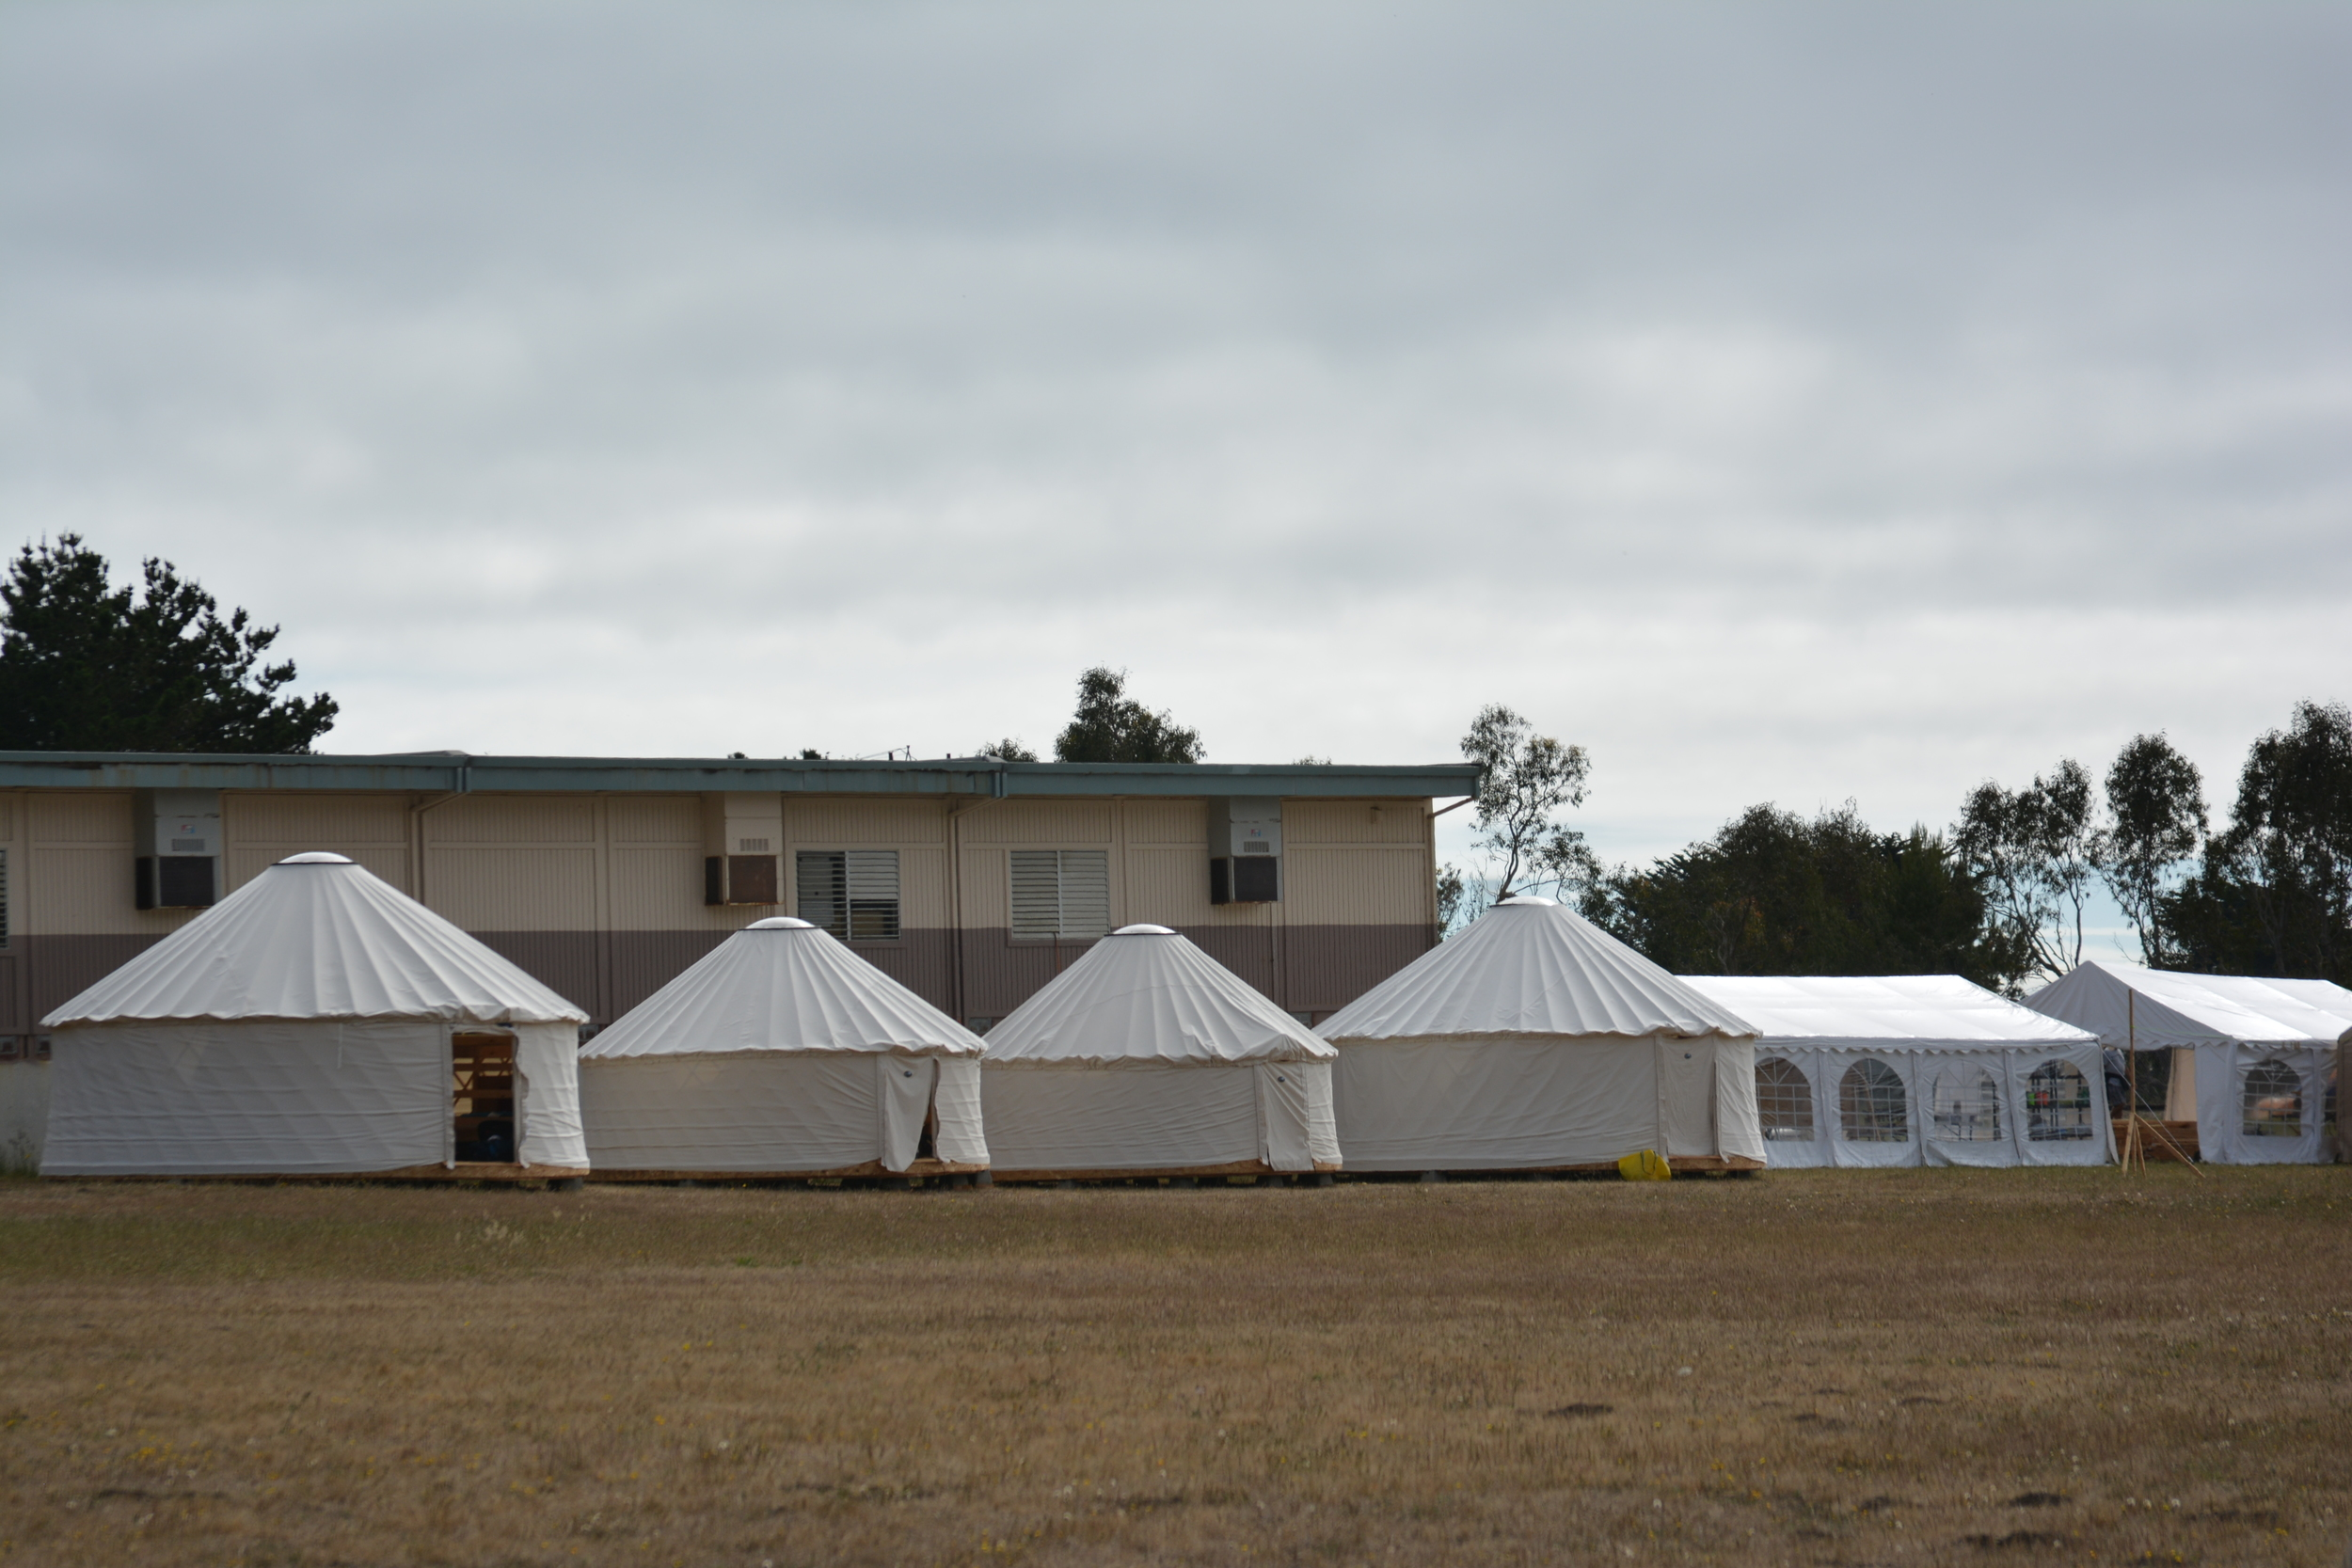 During siesta, everyone stays in their yurts (almost) silently.